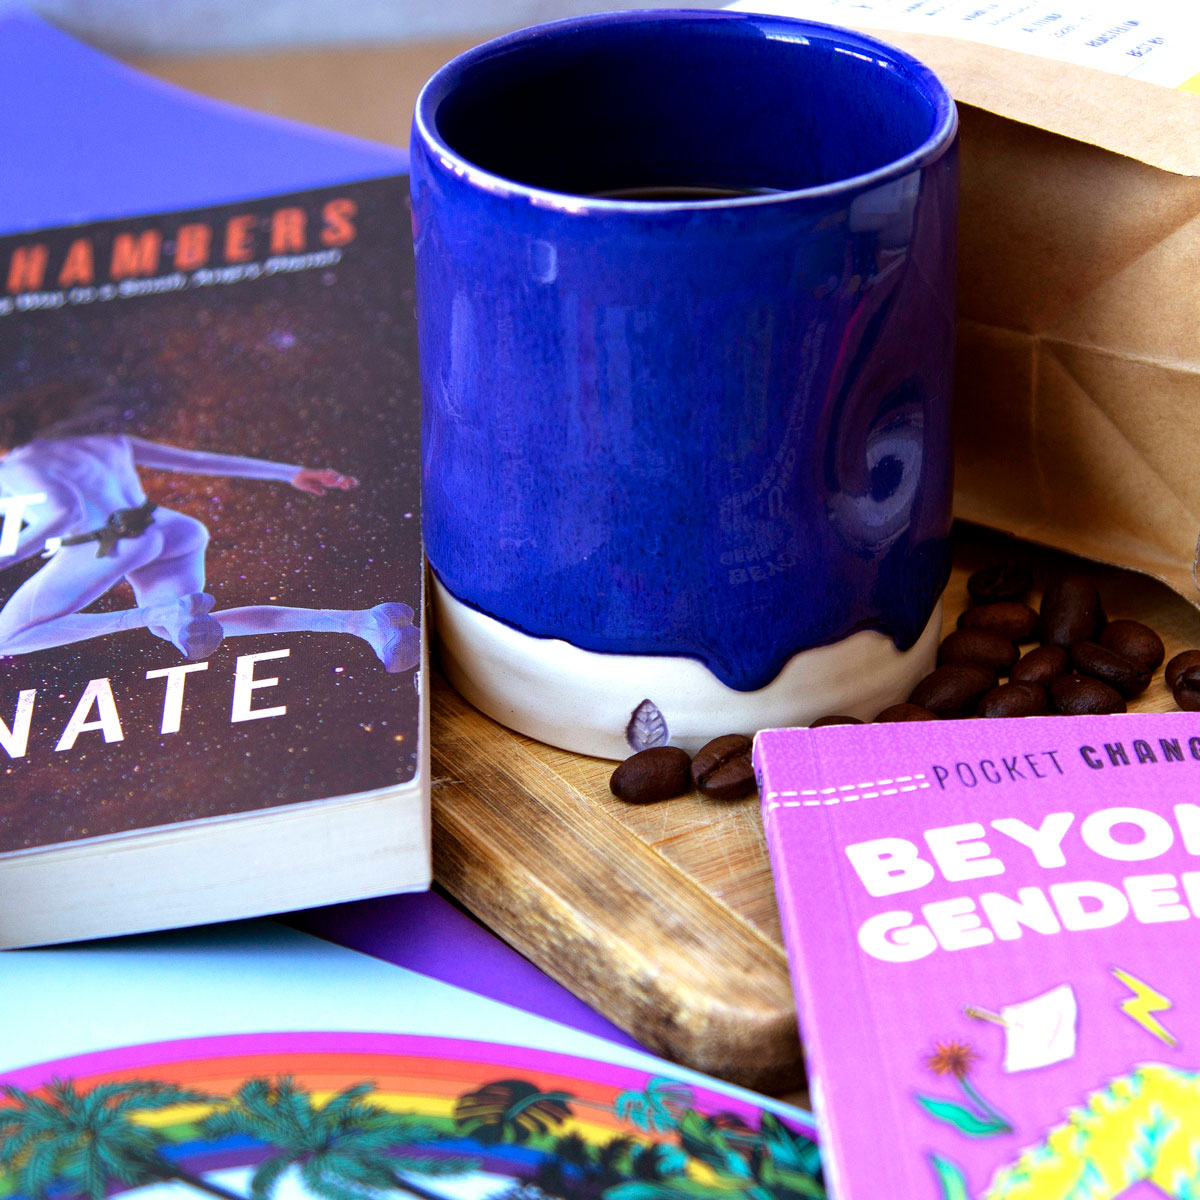 Blue ceramic tumbler sits on wooden cutting board, surrounded by a book, greeting cards and coffee beans